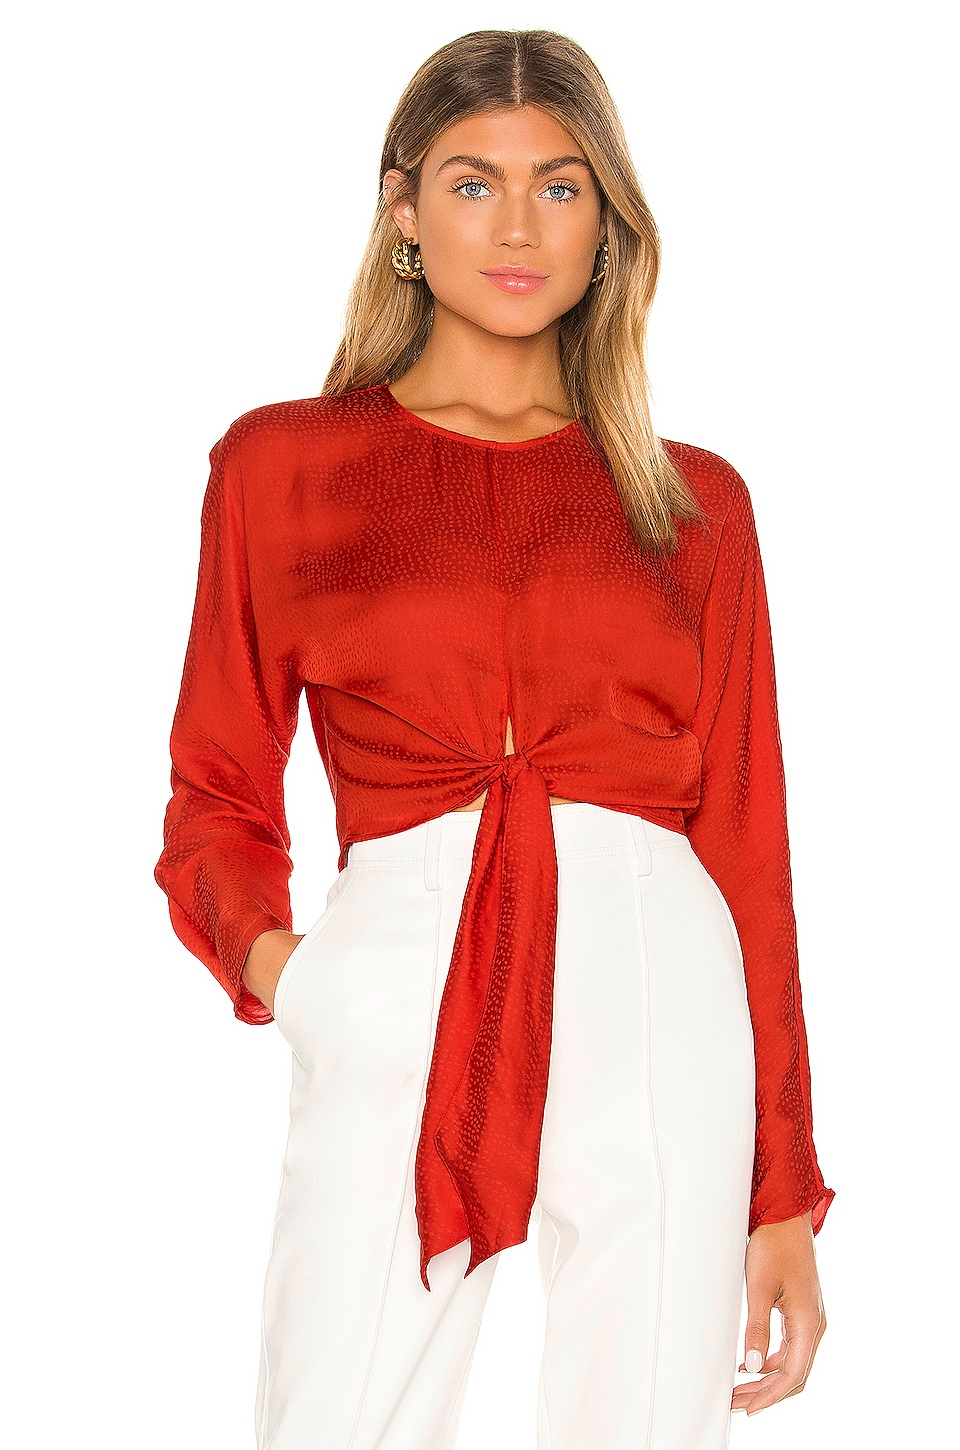 L'Academie The Amaia Top in Fiery Red